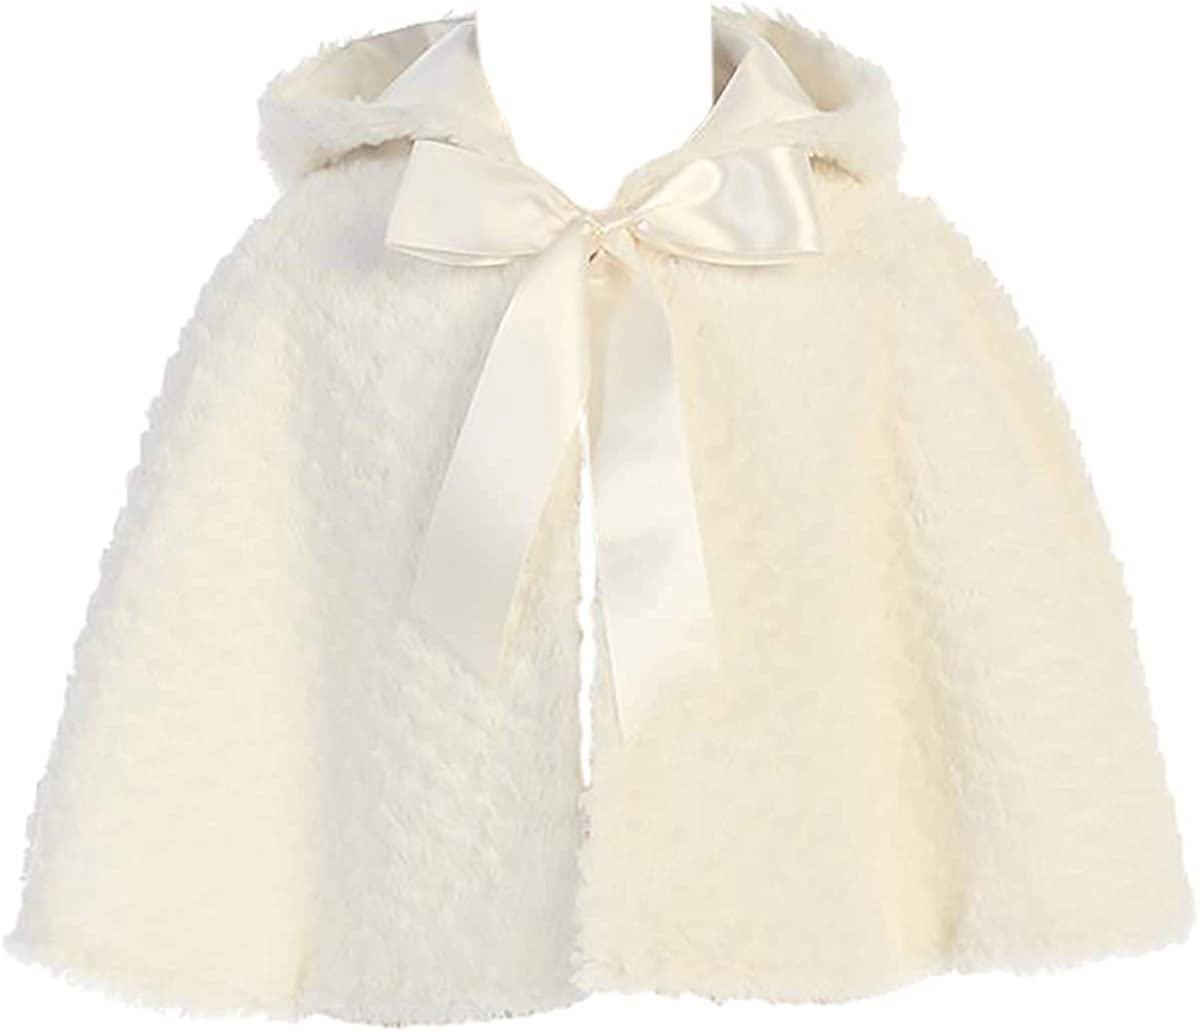 dPois Girls Faux Fur Flower Girl Bolero Shrug Cardigan Coat Wedding Bridal Party Prom Dress Jacket